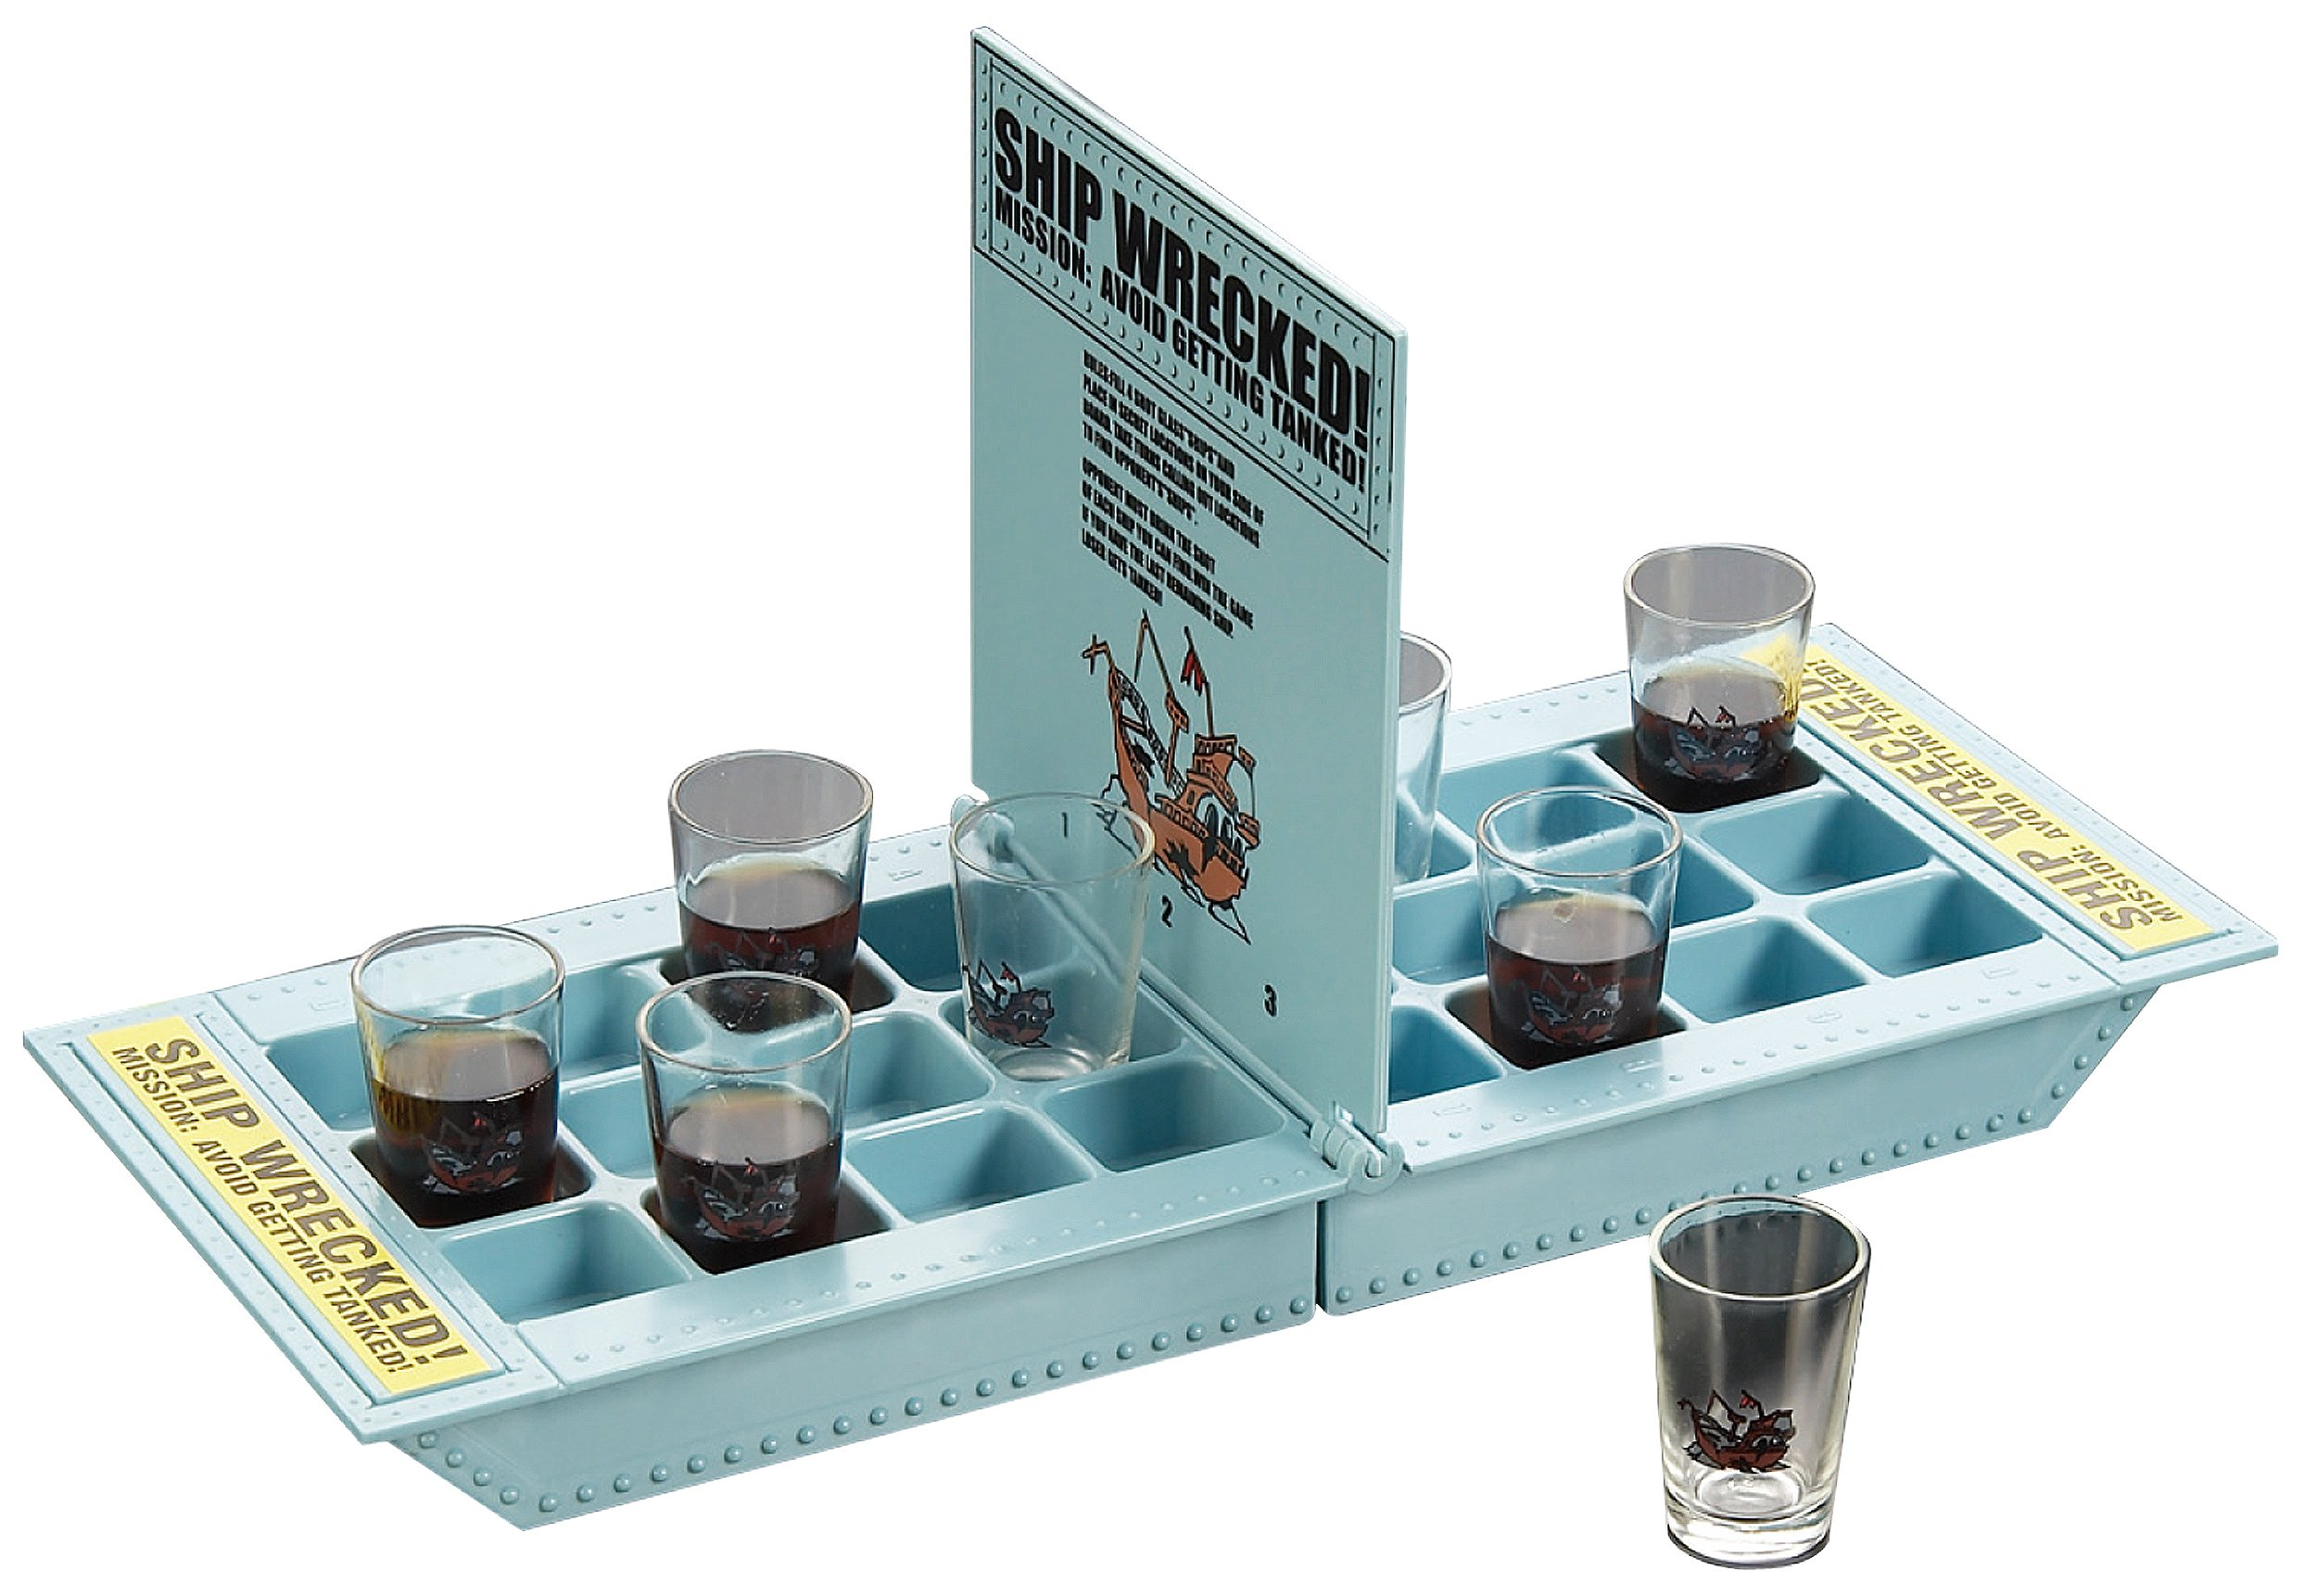 Fairly Odd Novelties Who Needs a Ship? Take Your Shots Into Battle Shipwreck Drinking Game